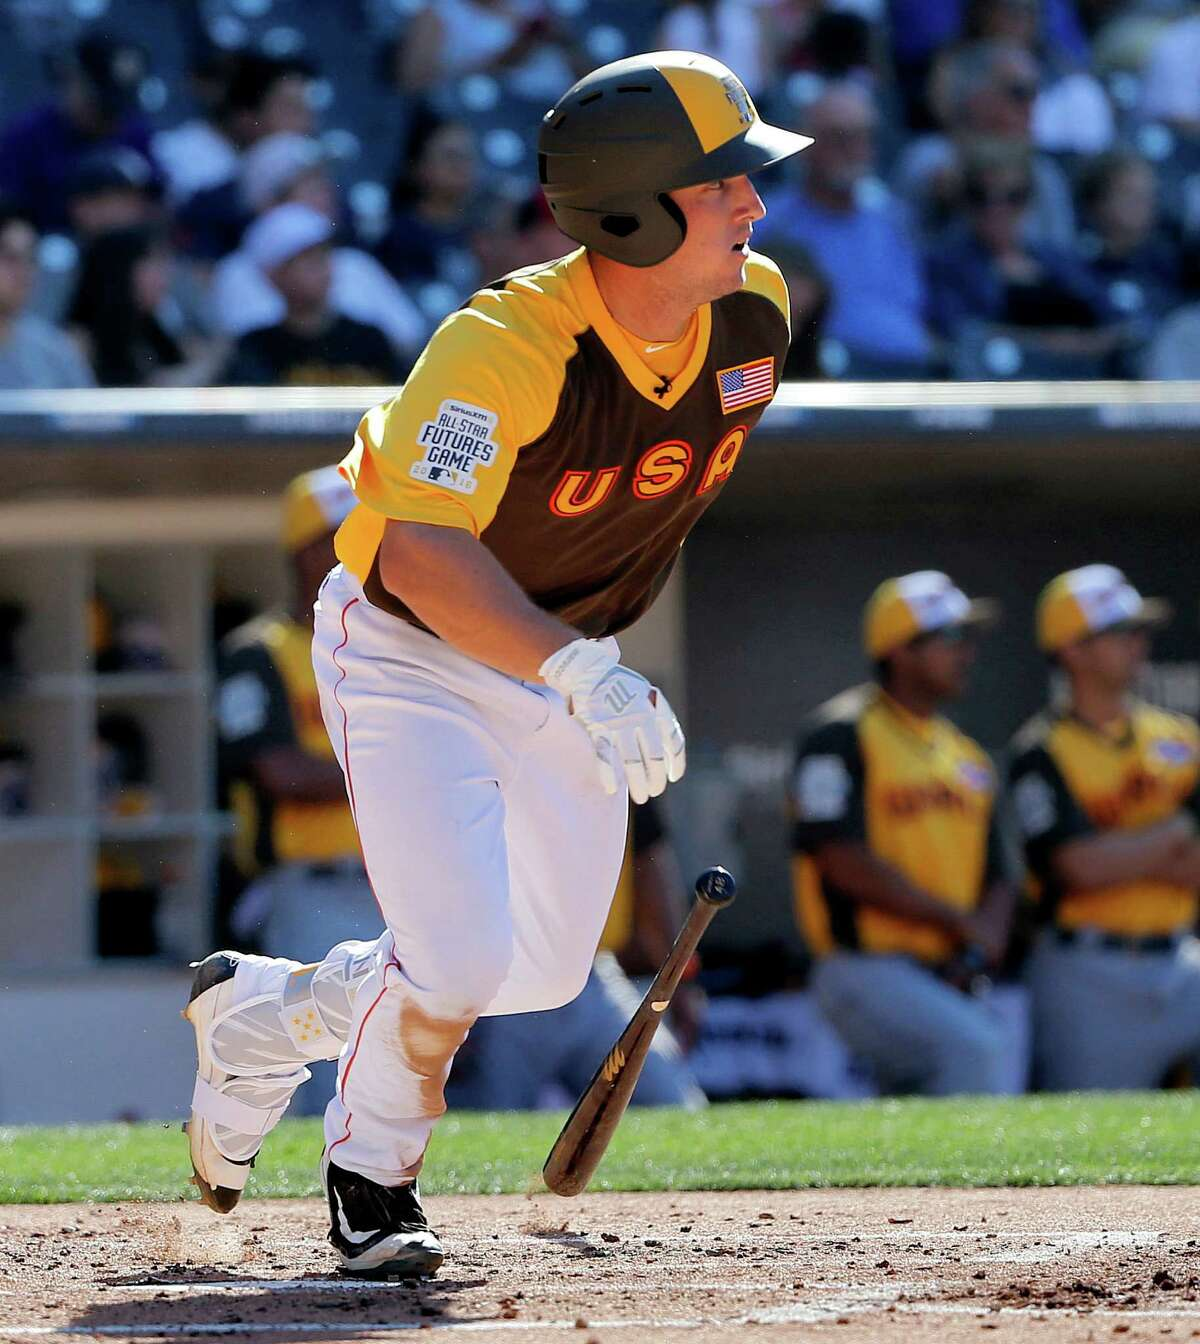 U.S. Team's Alex Bregman, of the Houston Astros, connects for a base hit against the World Team during the third inning of the All-Star Futures baseball game, Sunday, July 10, 2016, in San Diego. (AP Photo/Lenny Ignelzi)